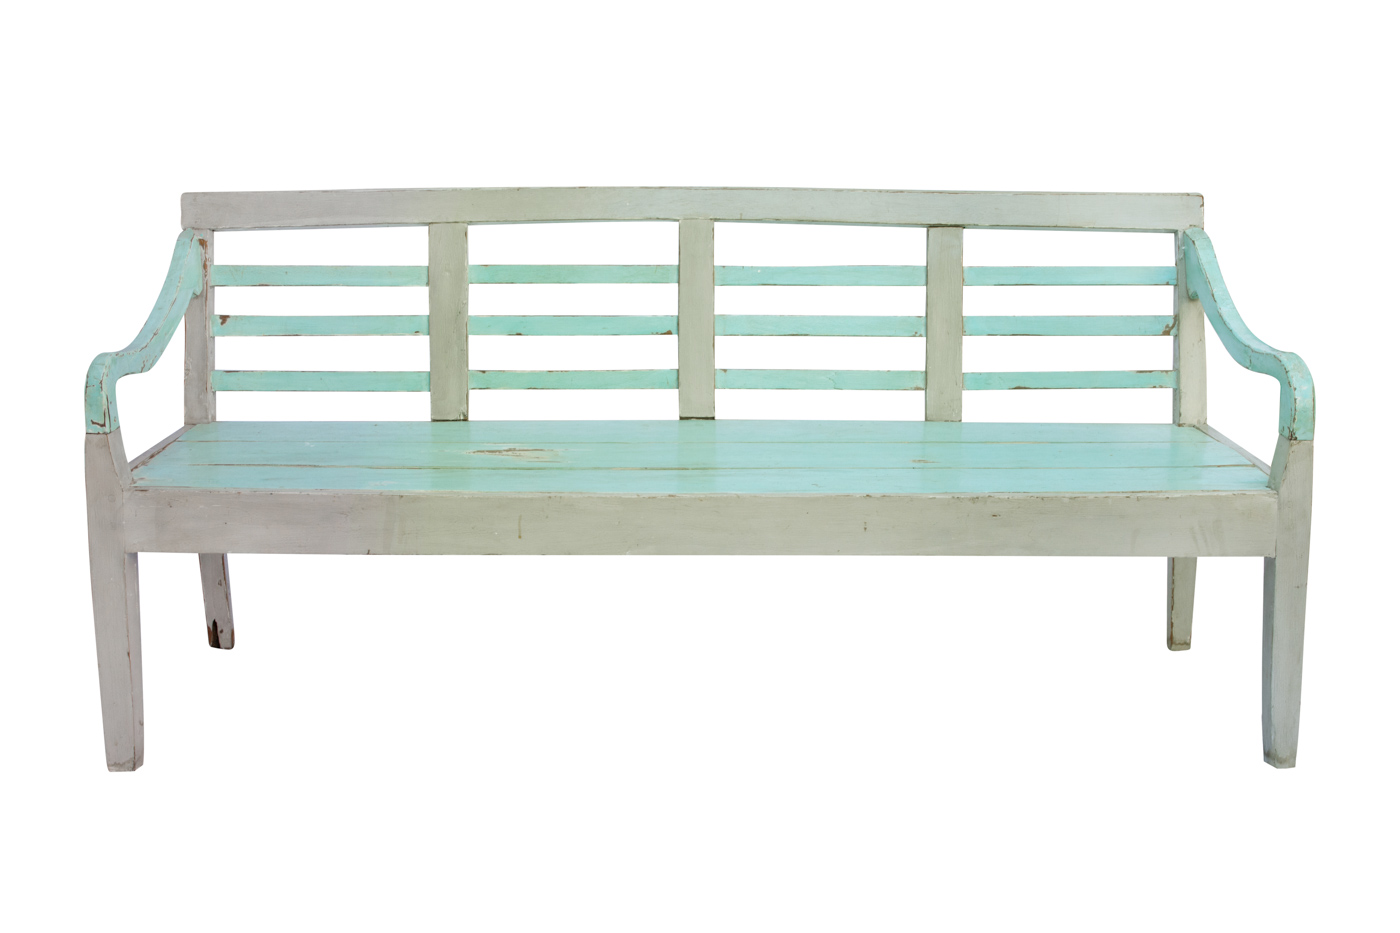 Balinese bench carved in light green wood, 189 Cm